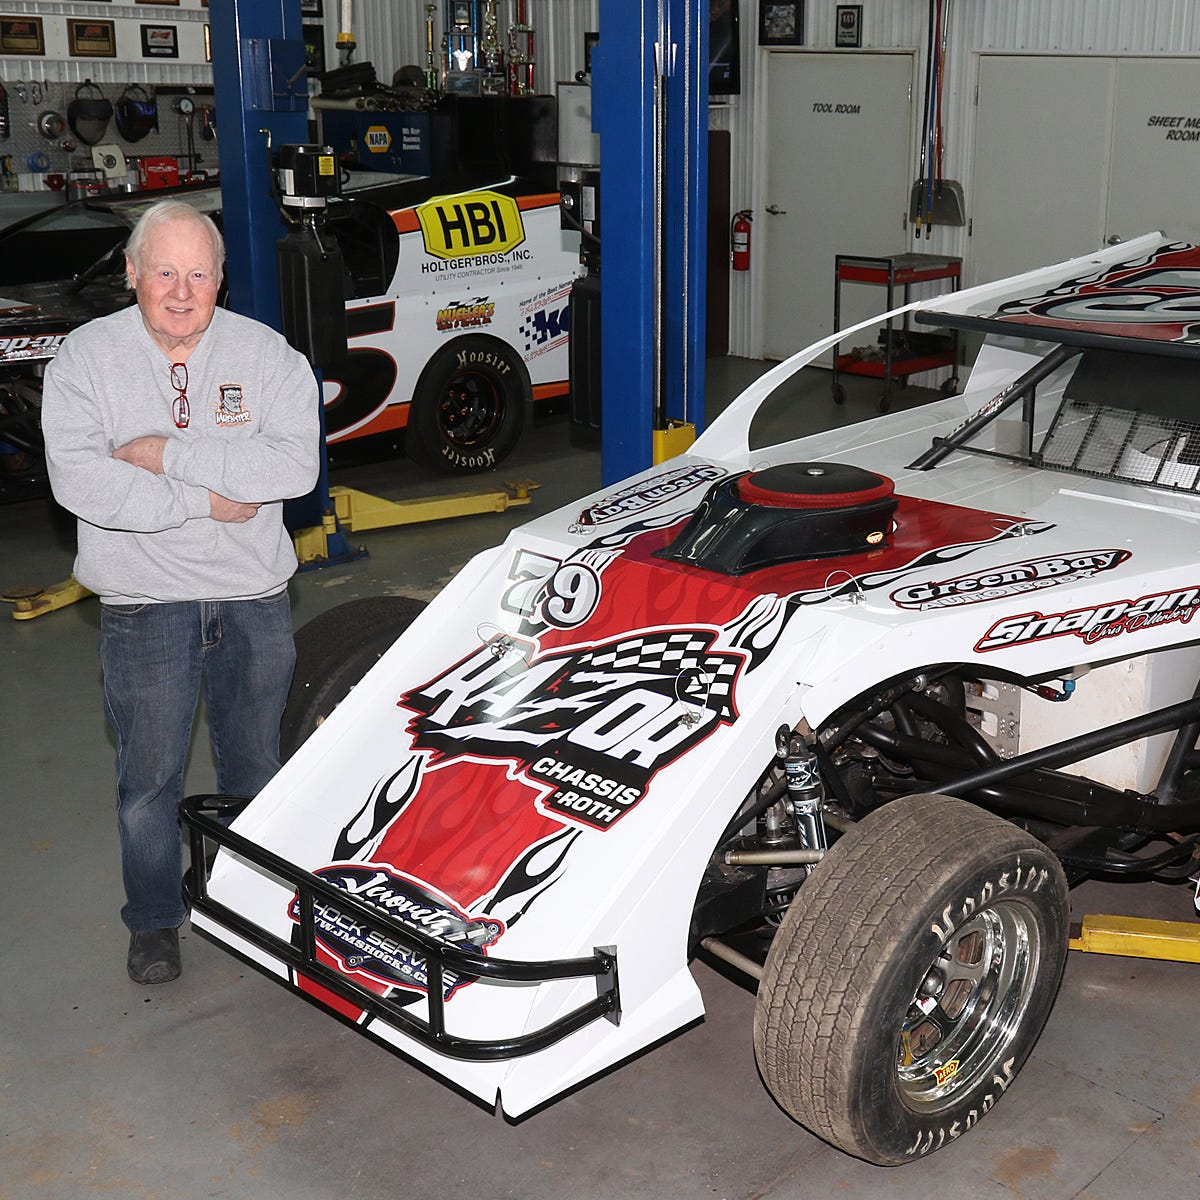 IMCA modified racer Jerry Muenster isn't taking foot off gas at 78